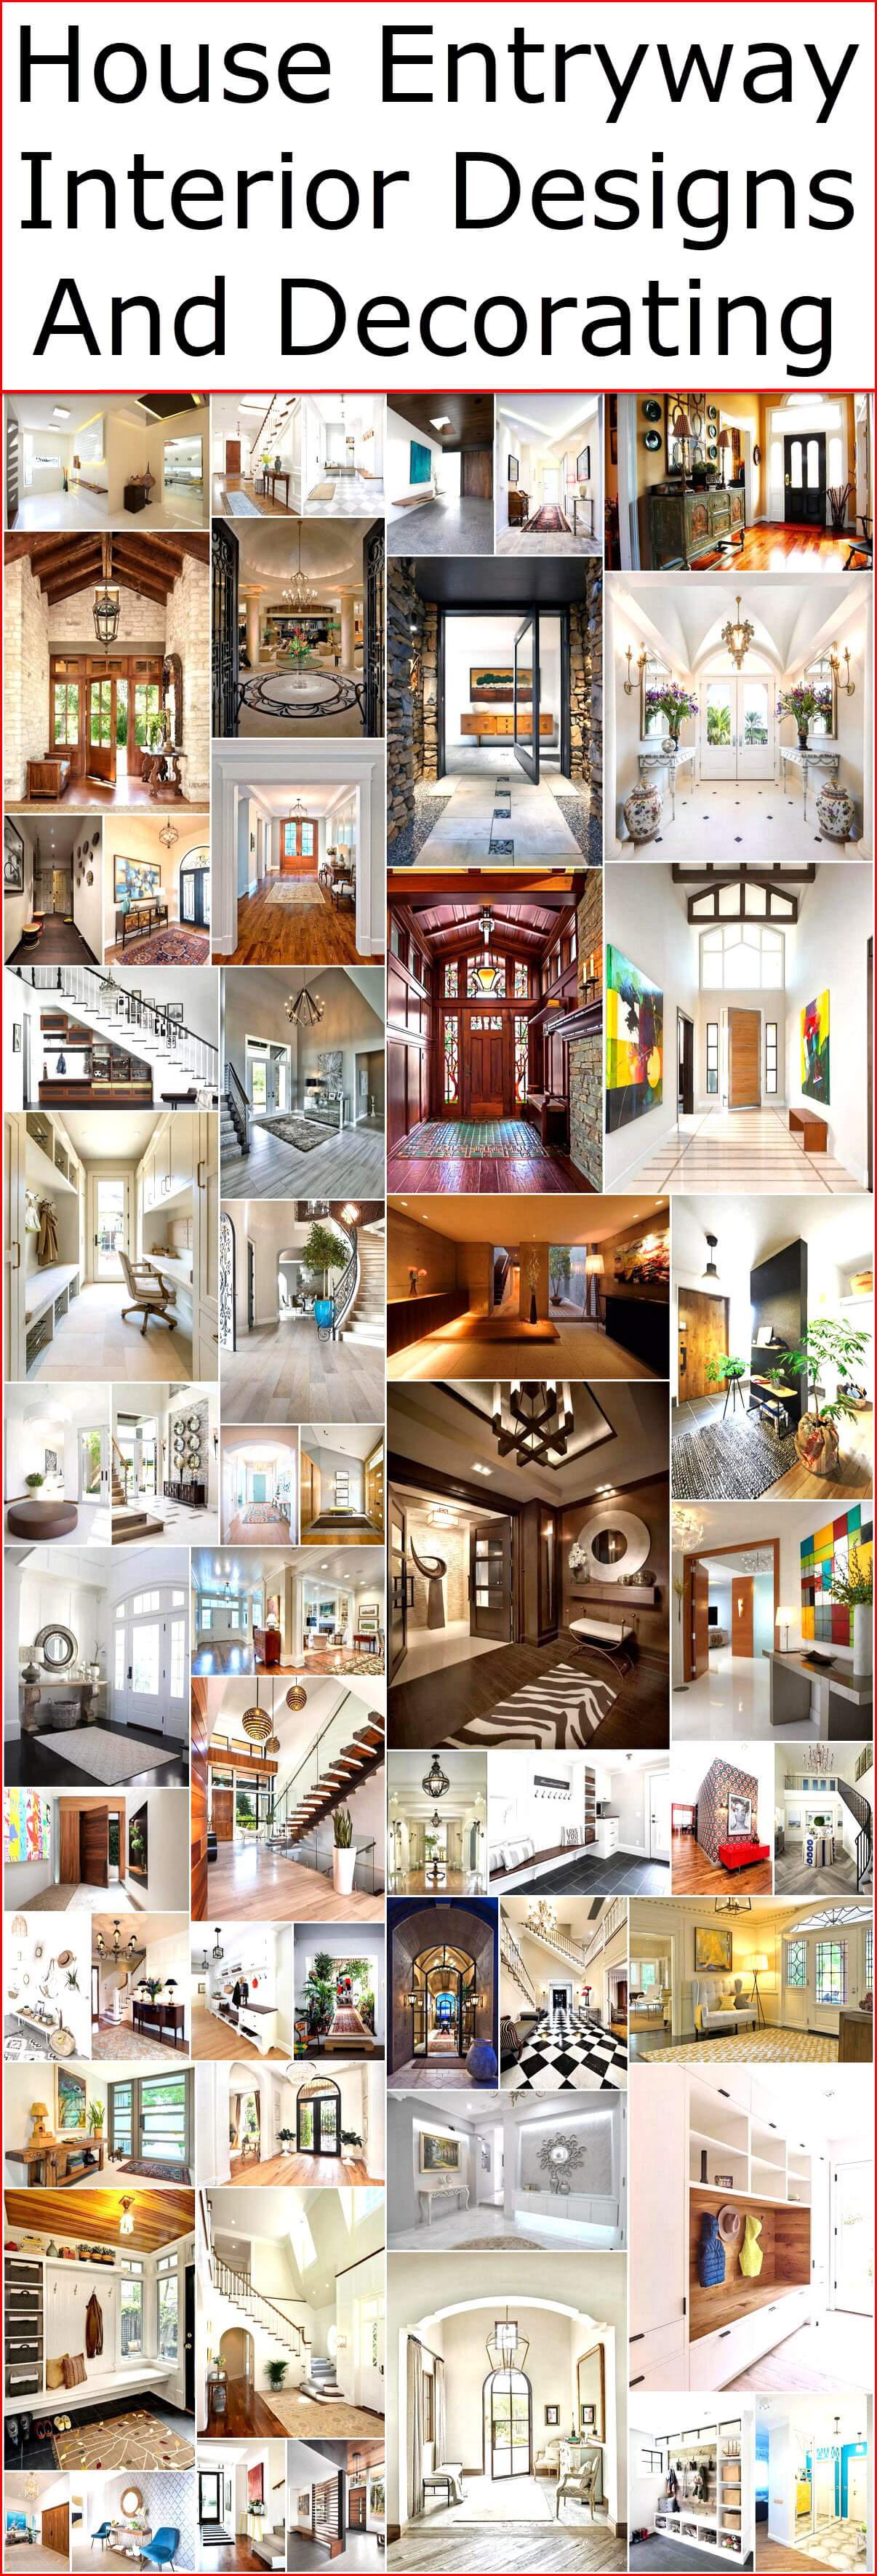 Designing Home House Entryway Interior Designs And Decorating Interior